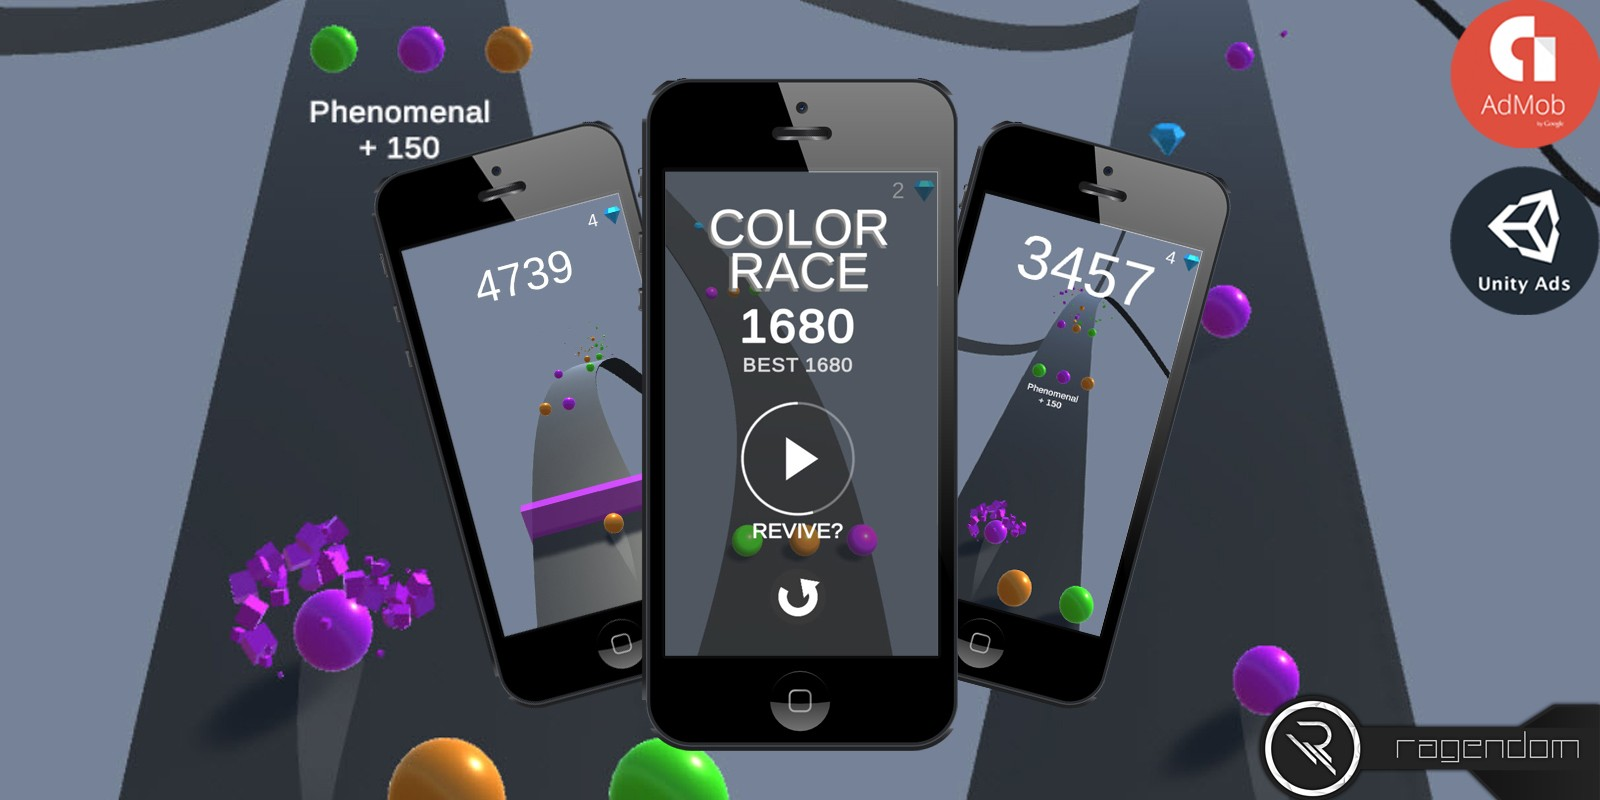 Color Race - Complete Unity Game by Ragendom | Codester